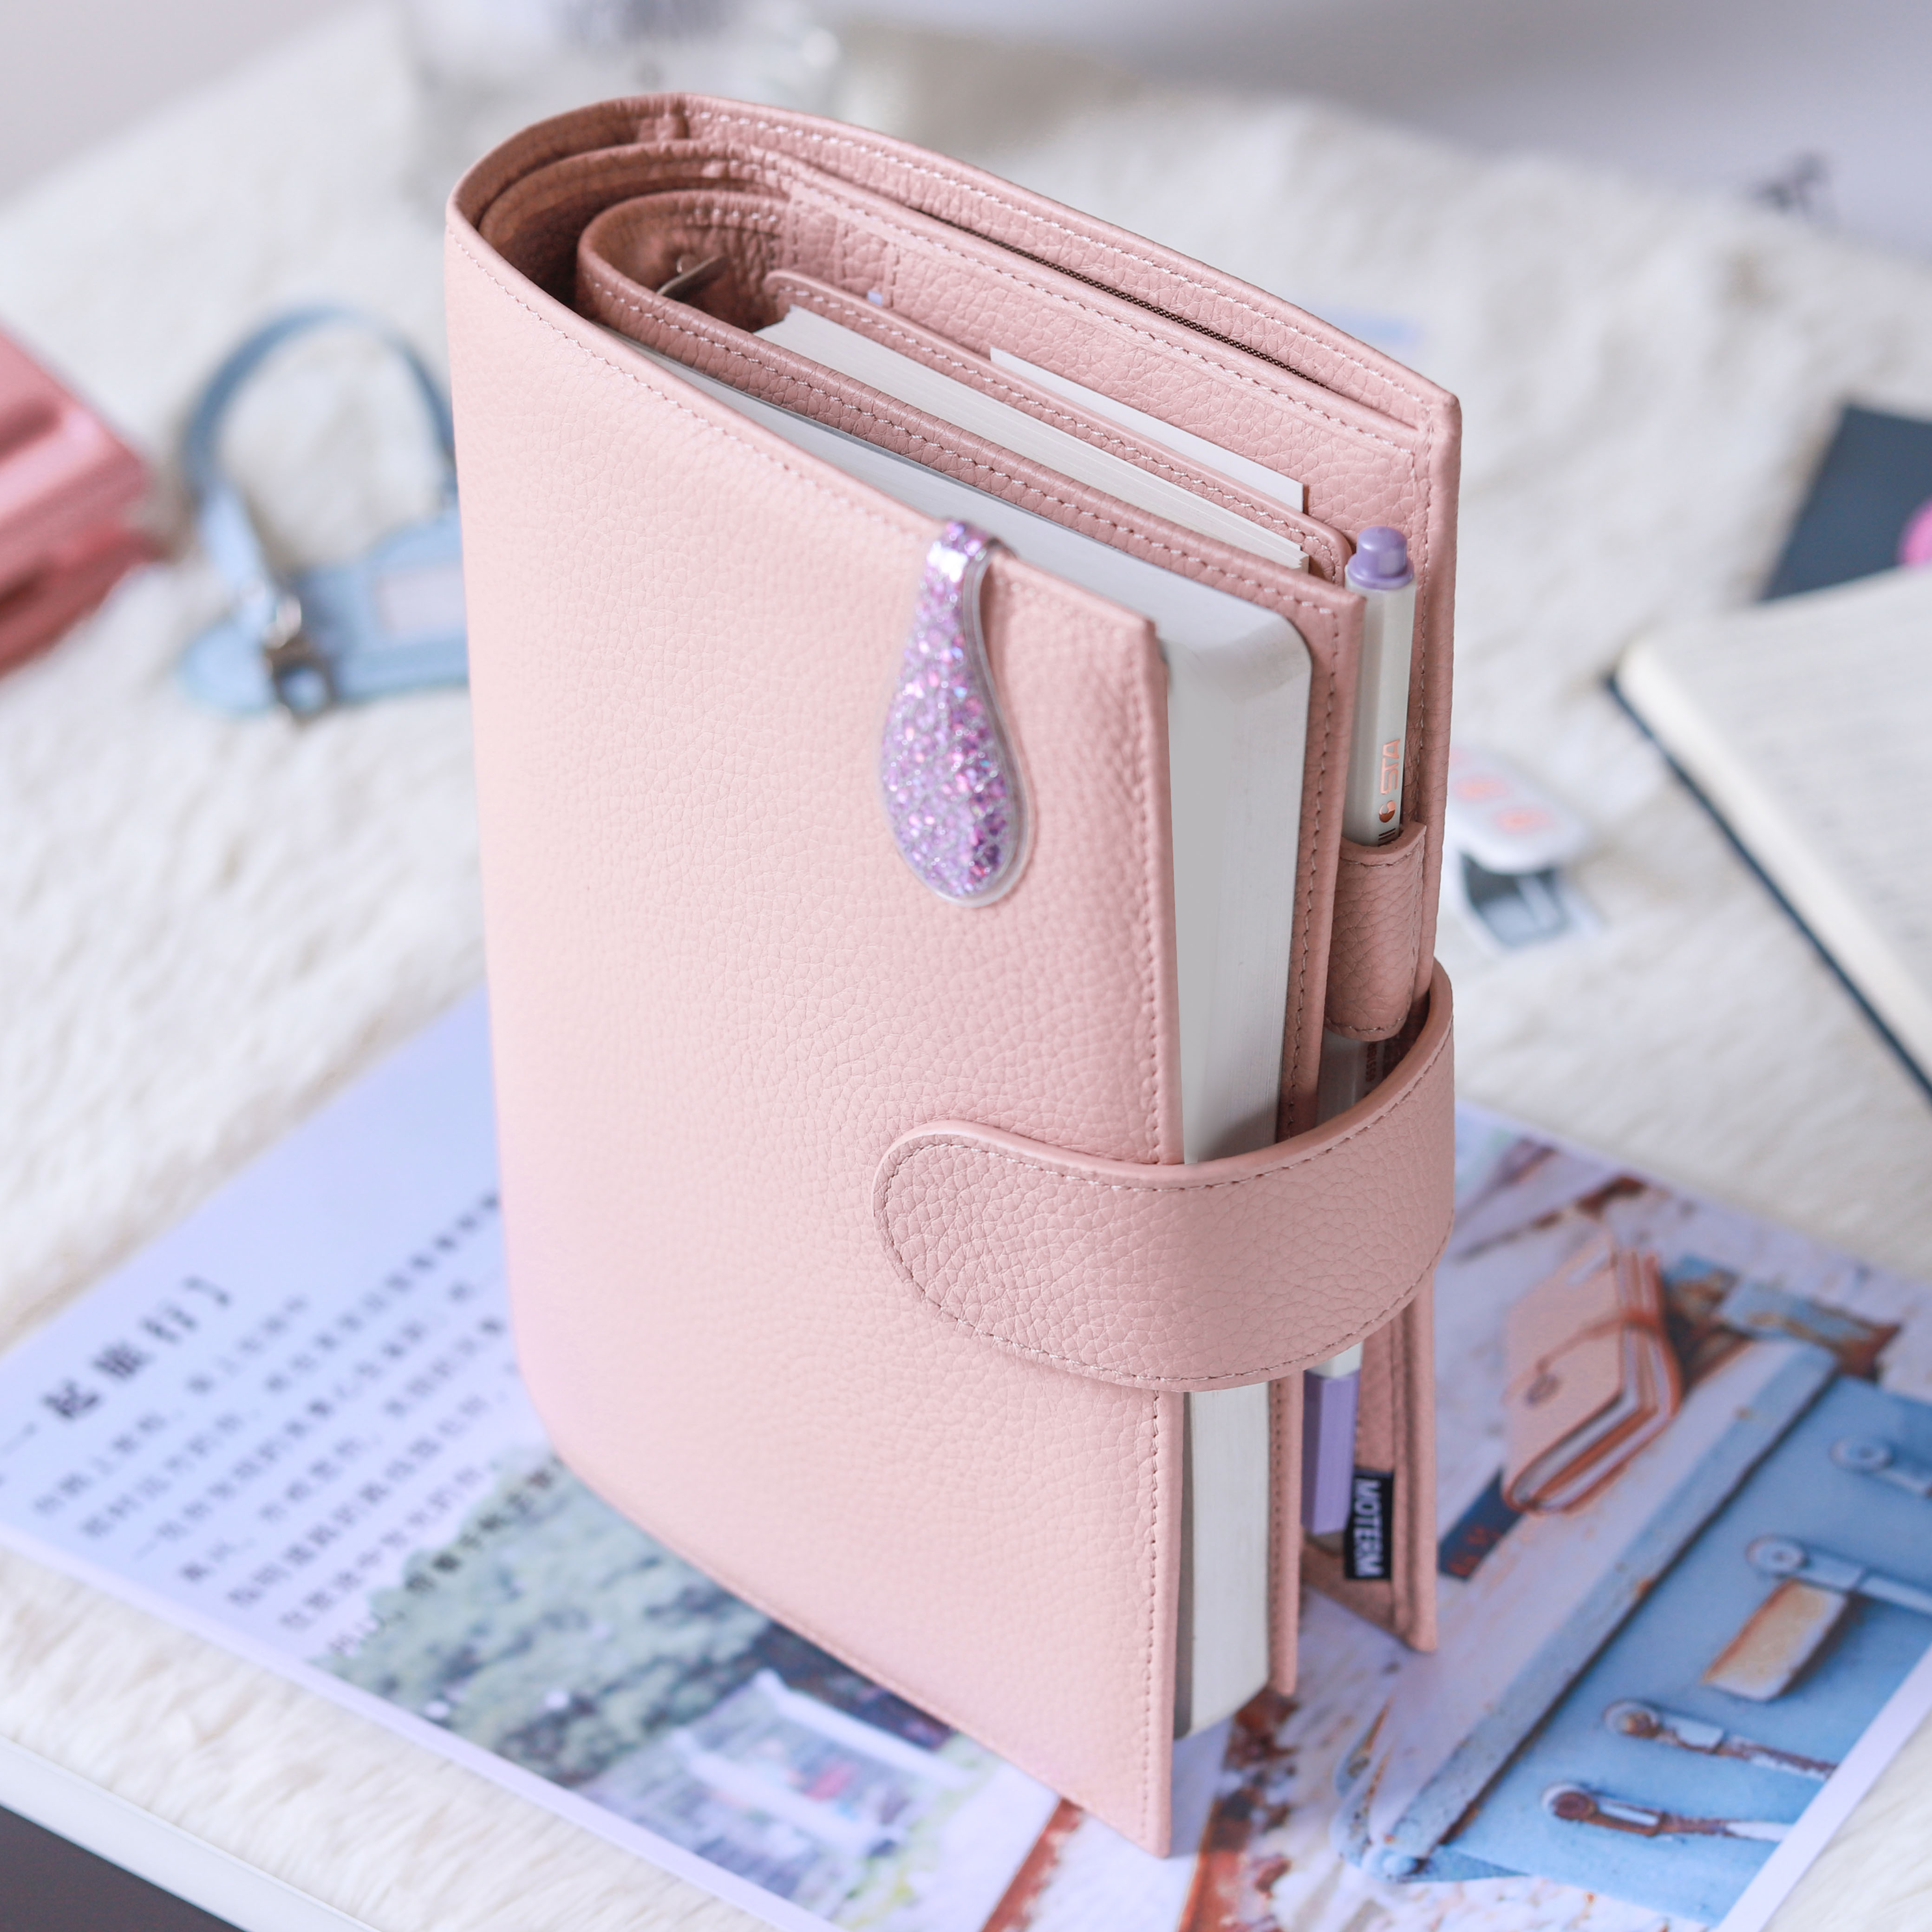 Moterm Personal Versa Planner with 25 mm Rings Litchi Style Multifunctional Agenda Organizer Diary Journal Notepad Sketchbook 4